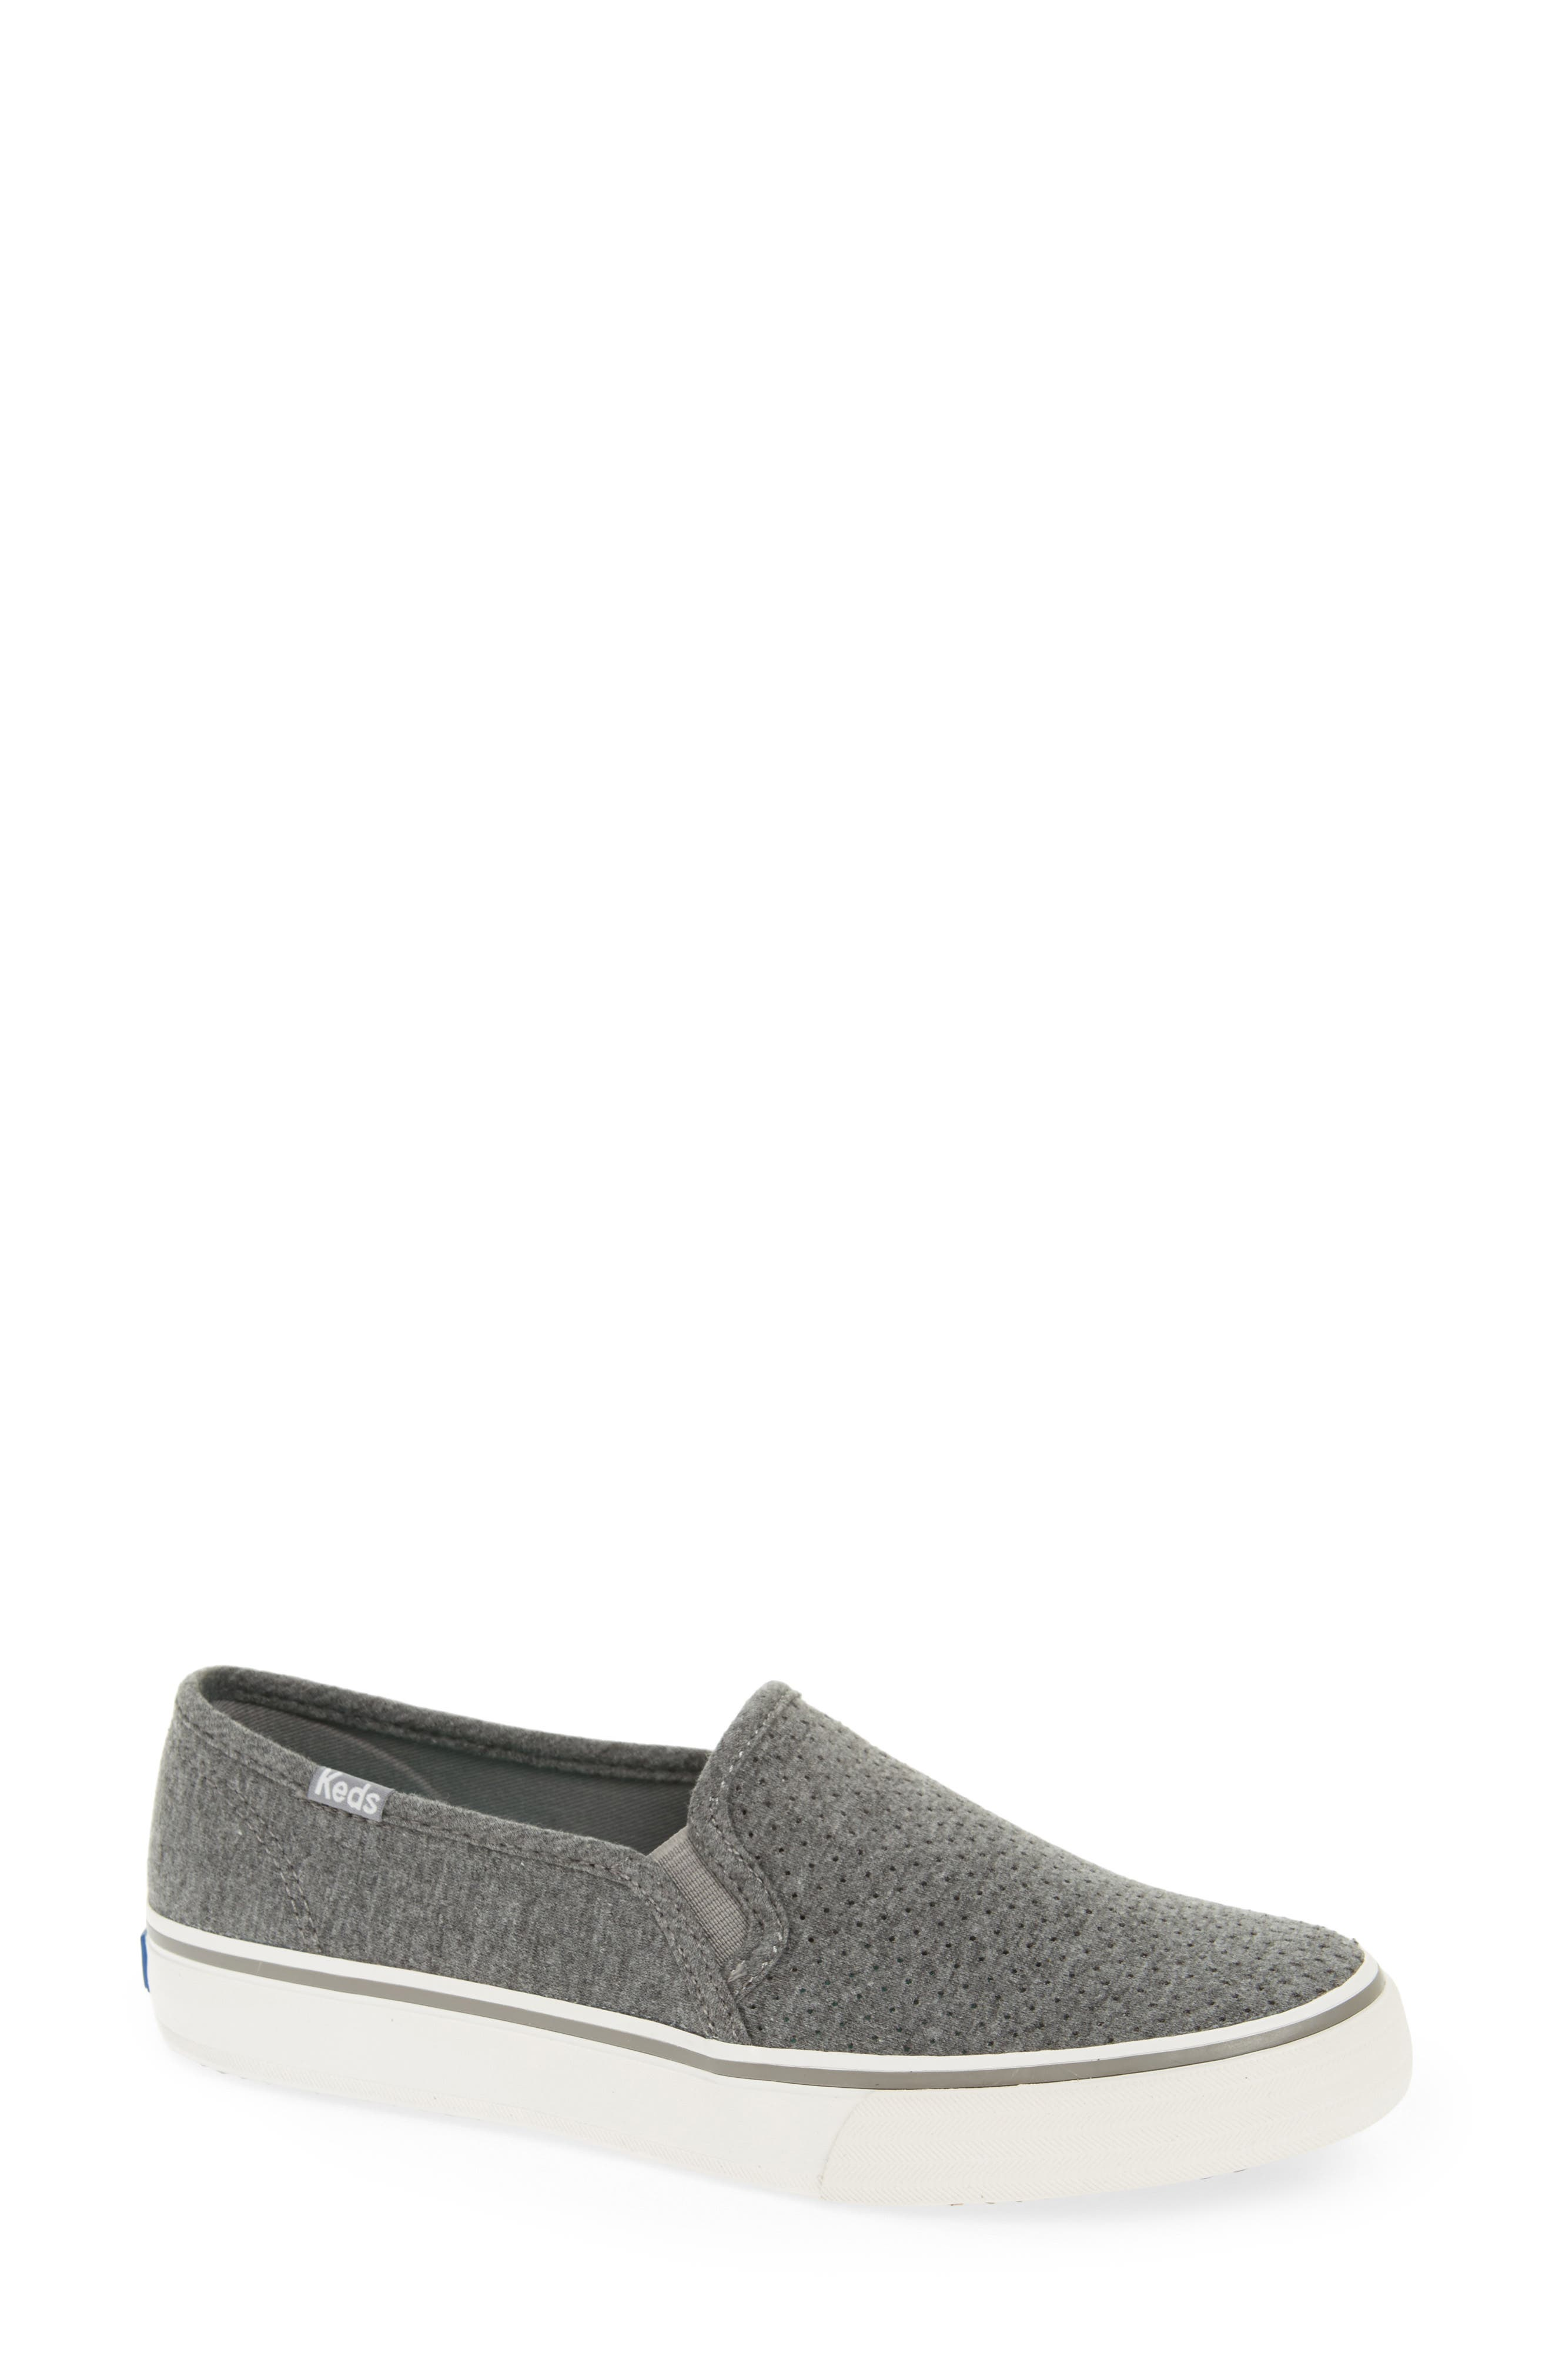 Double Decker Perforated Slip-On Sneaker,                         Main,                         color, 021